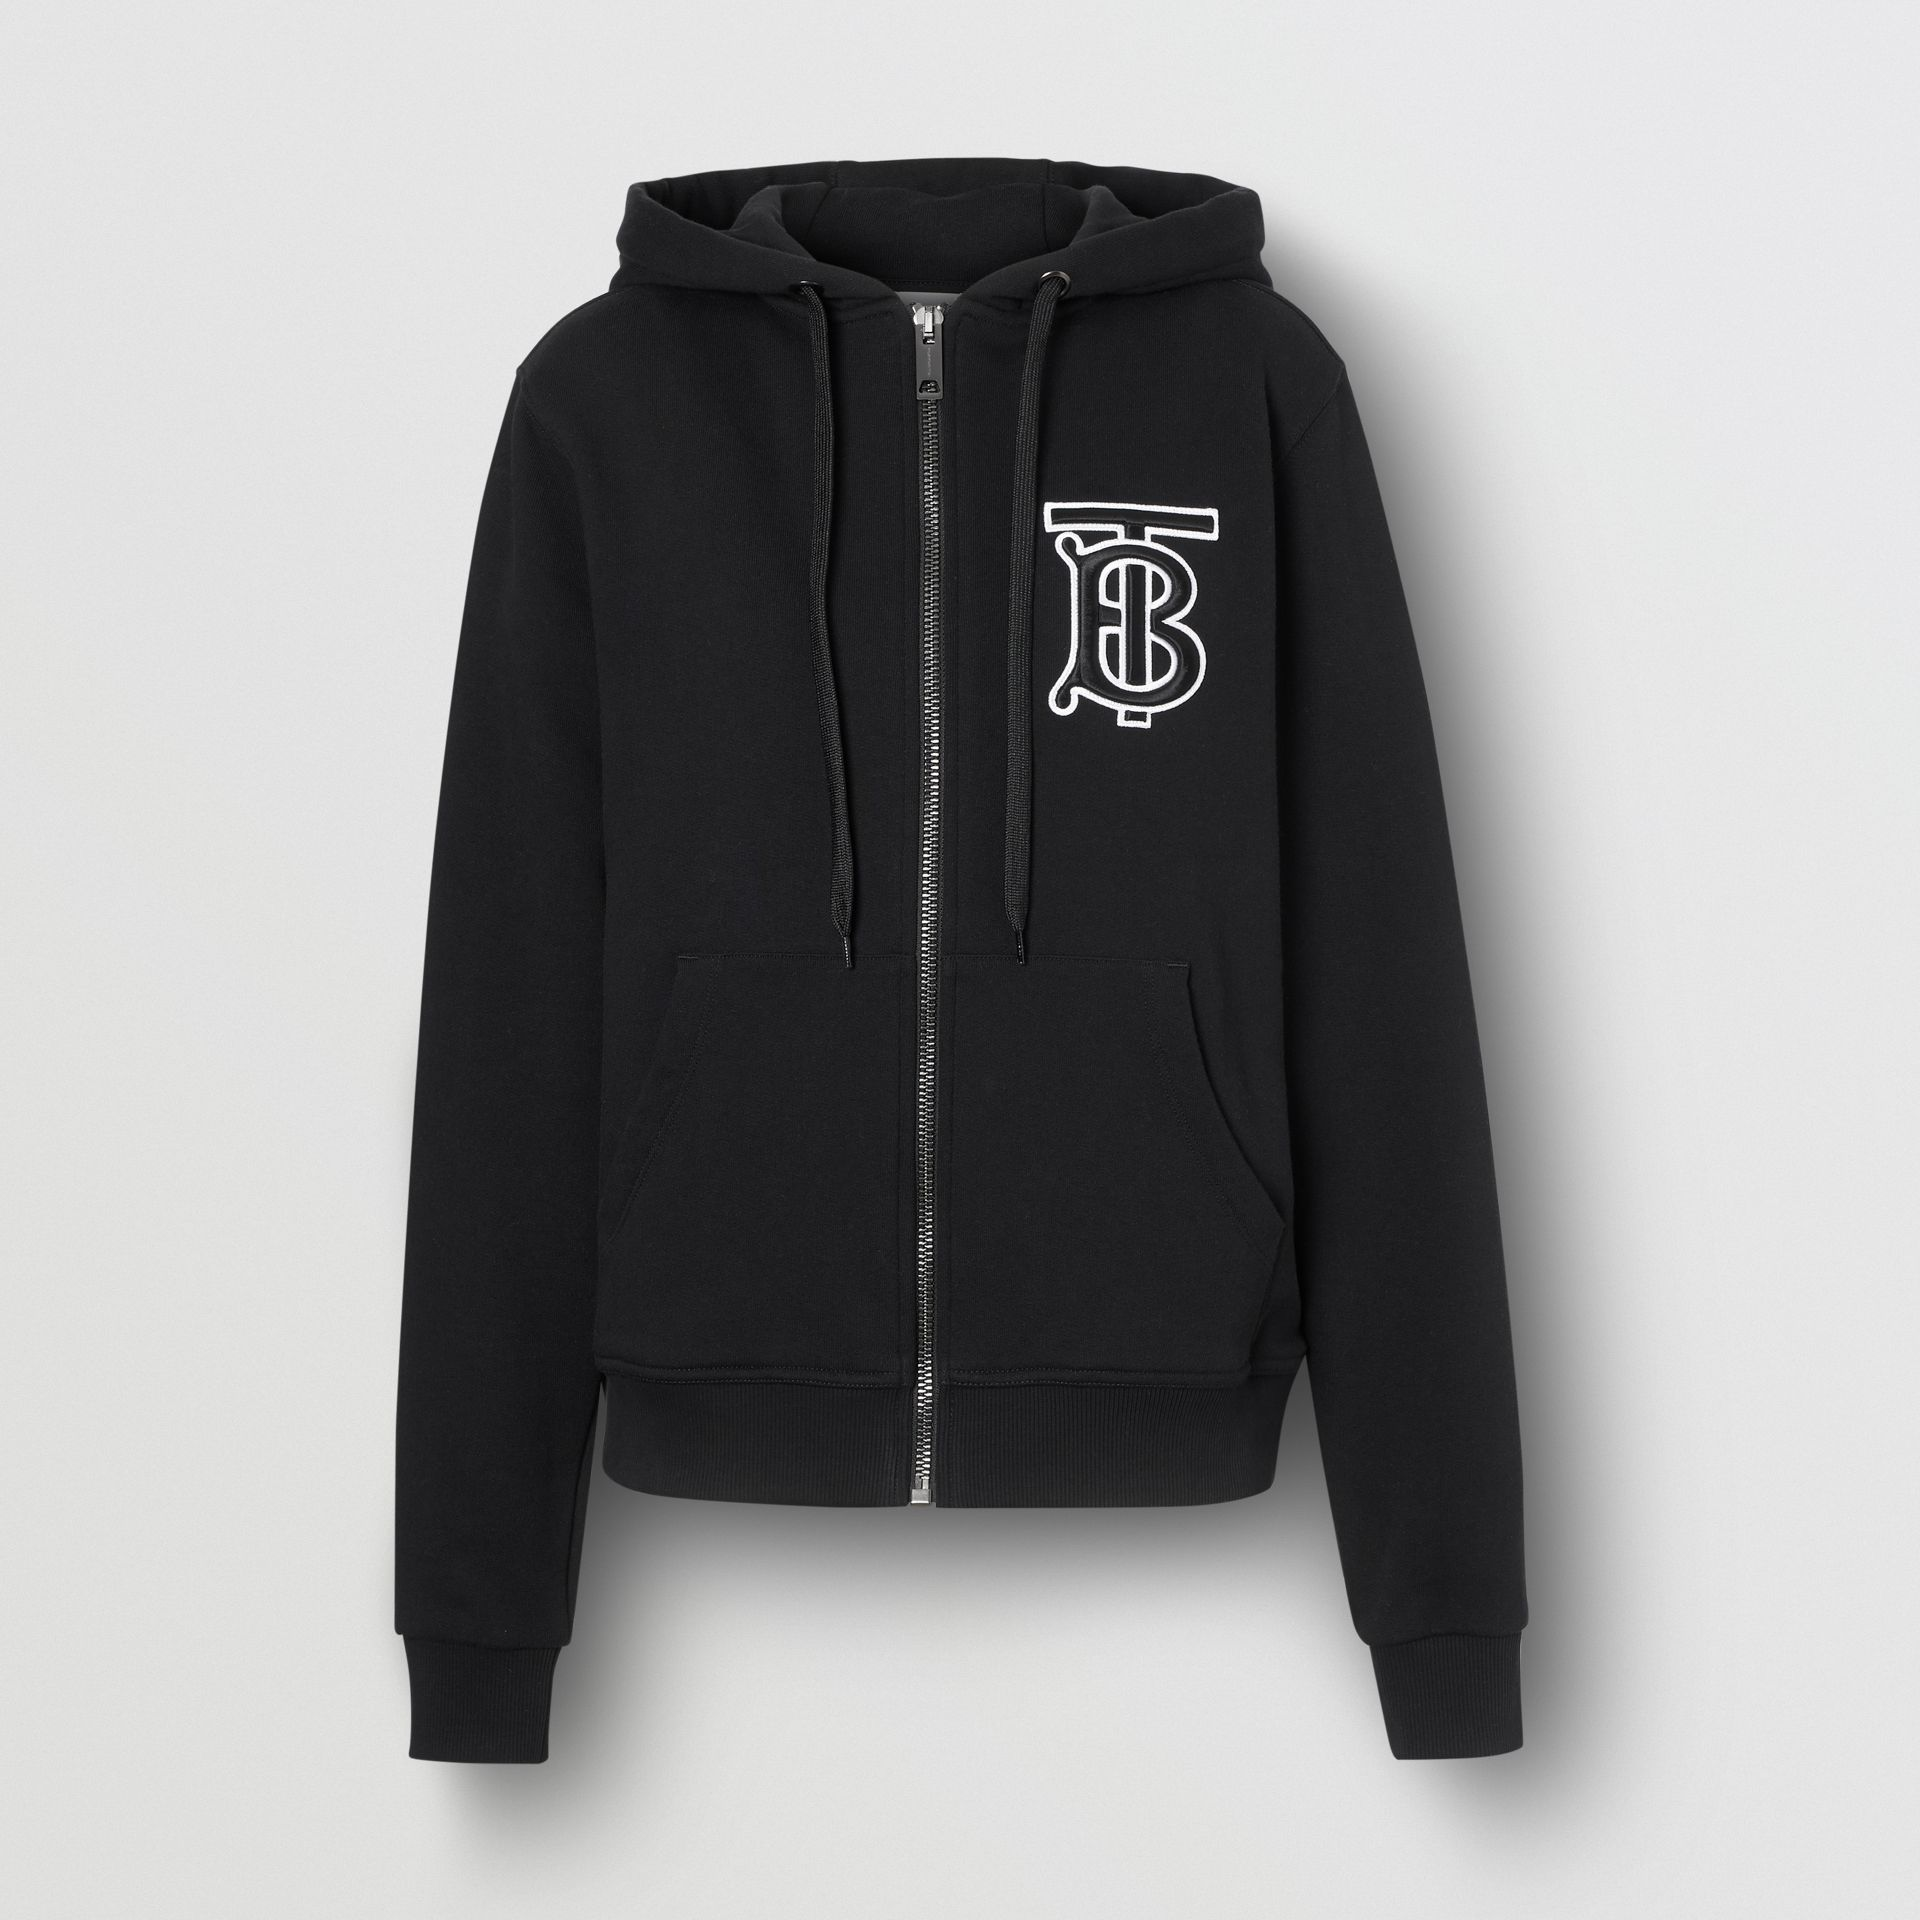 Monogram Motif Cotton Oversized Hooded Top in Black - Women | Burberry Canada - gallery image 3